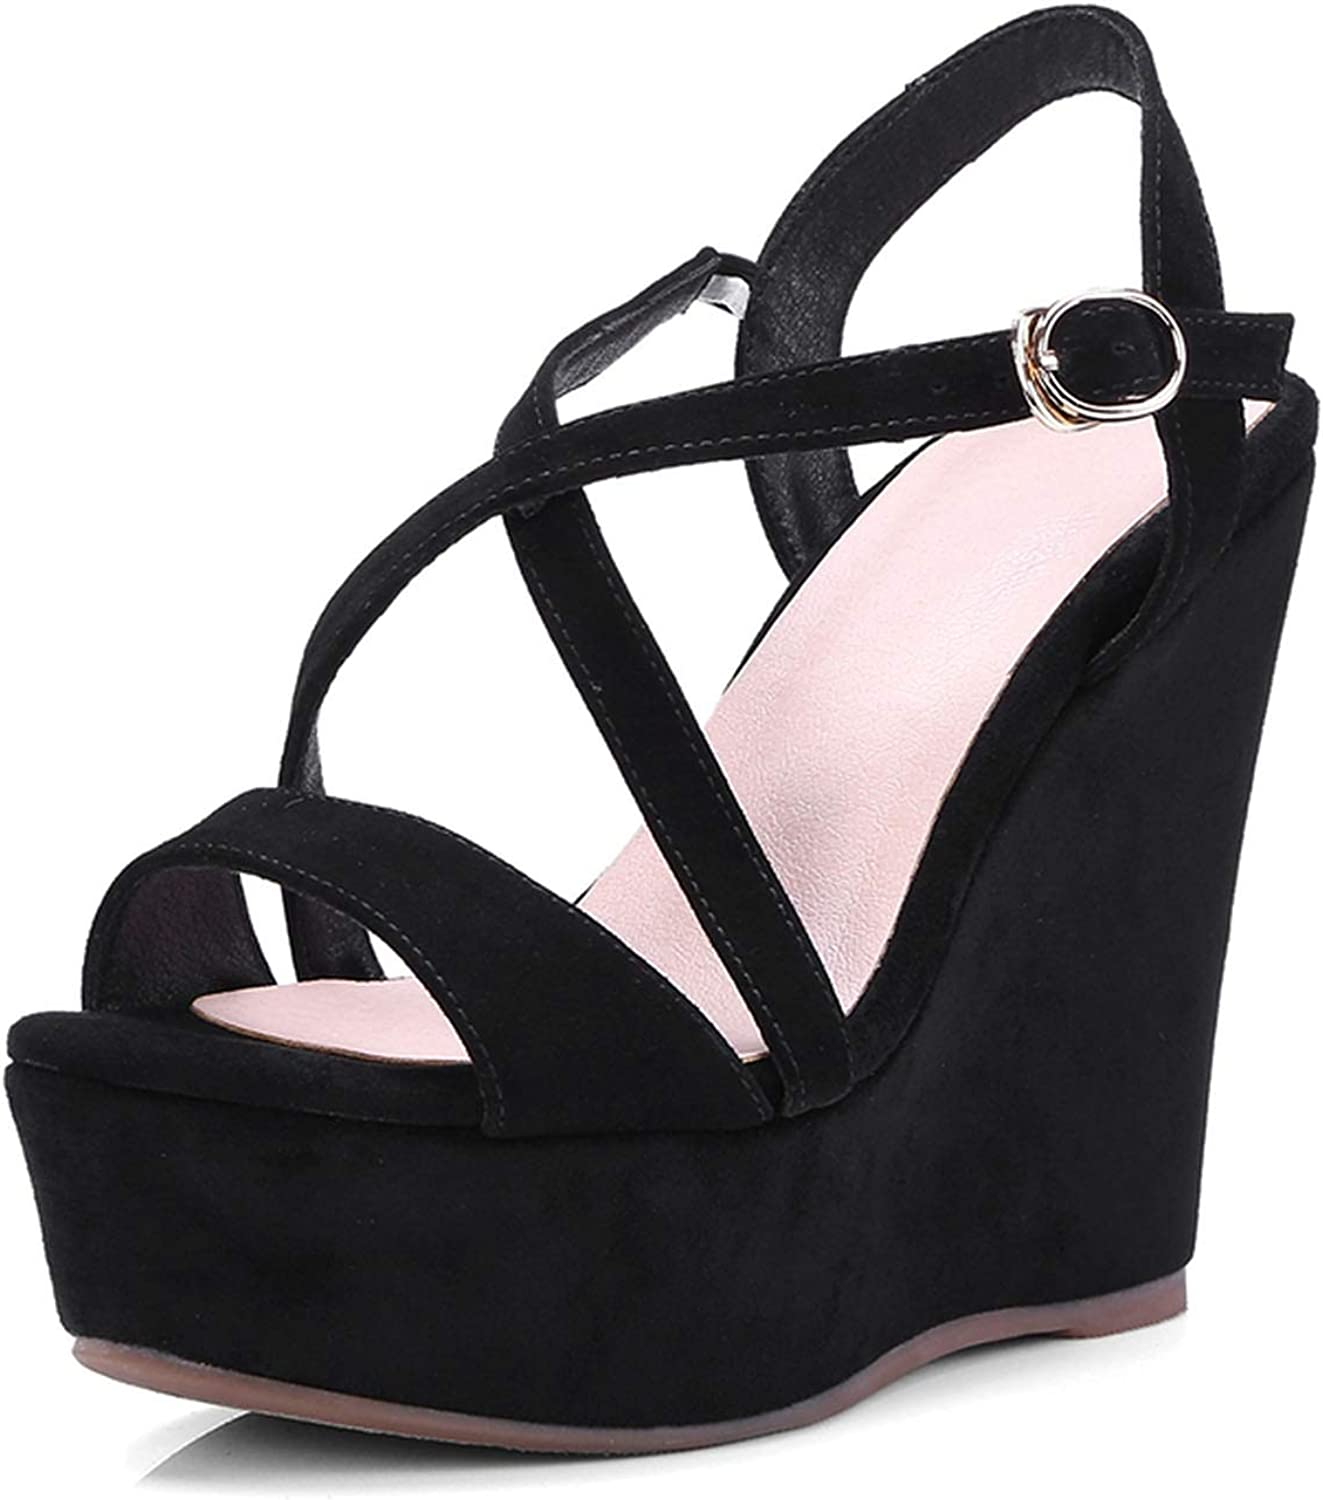 Casual Buckle High Heels Sandals Women Wedges shoes for Women shoes Woman ZYL2660